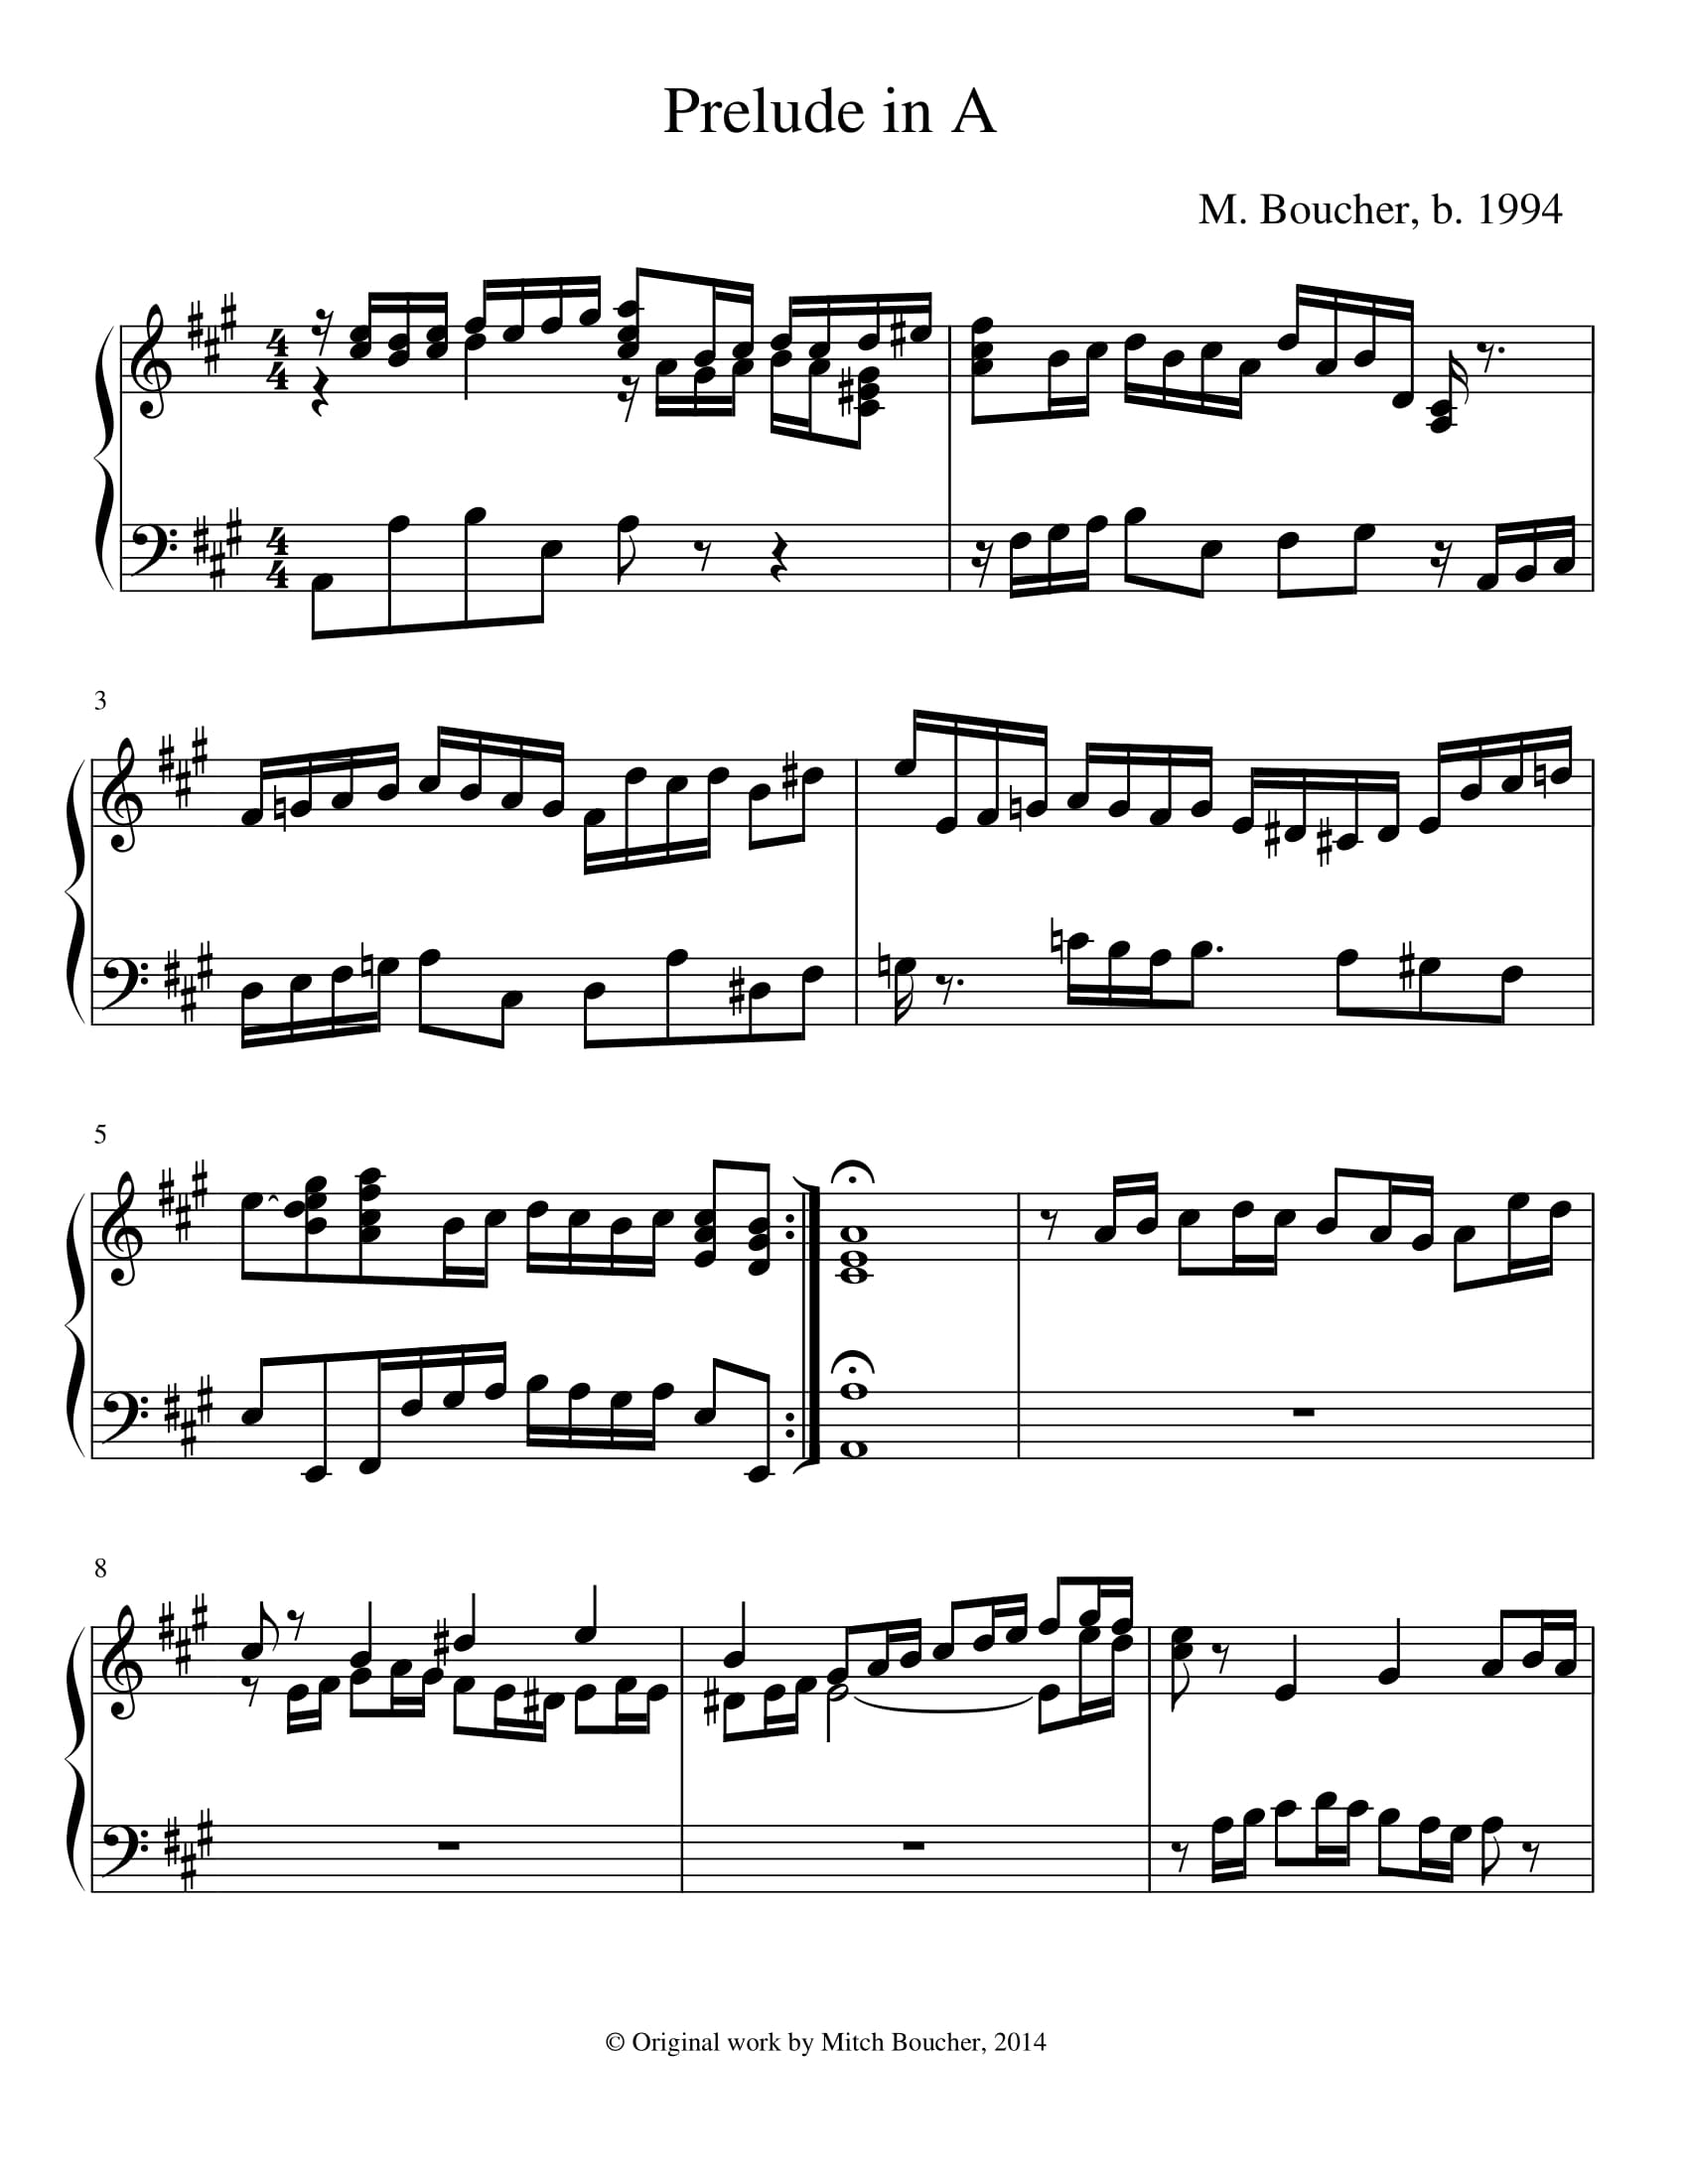 Prelude in A